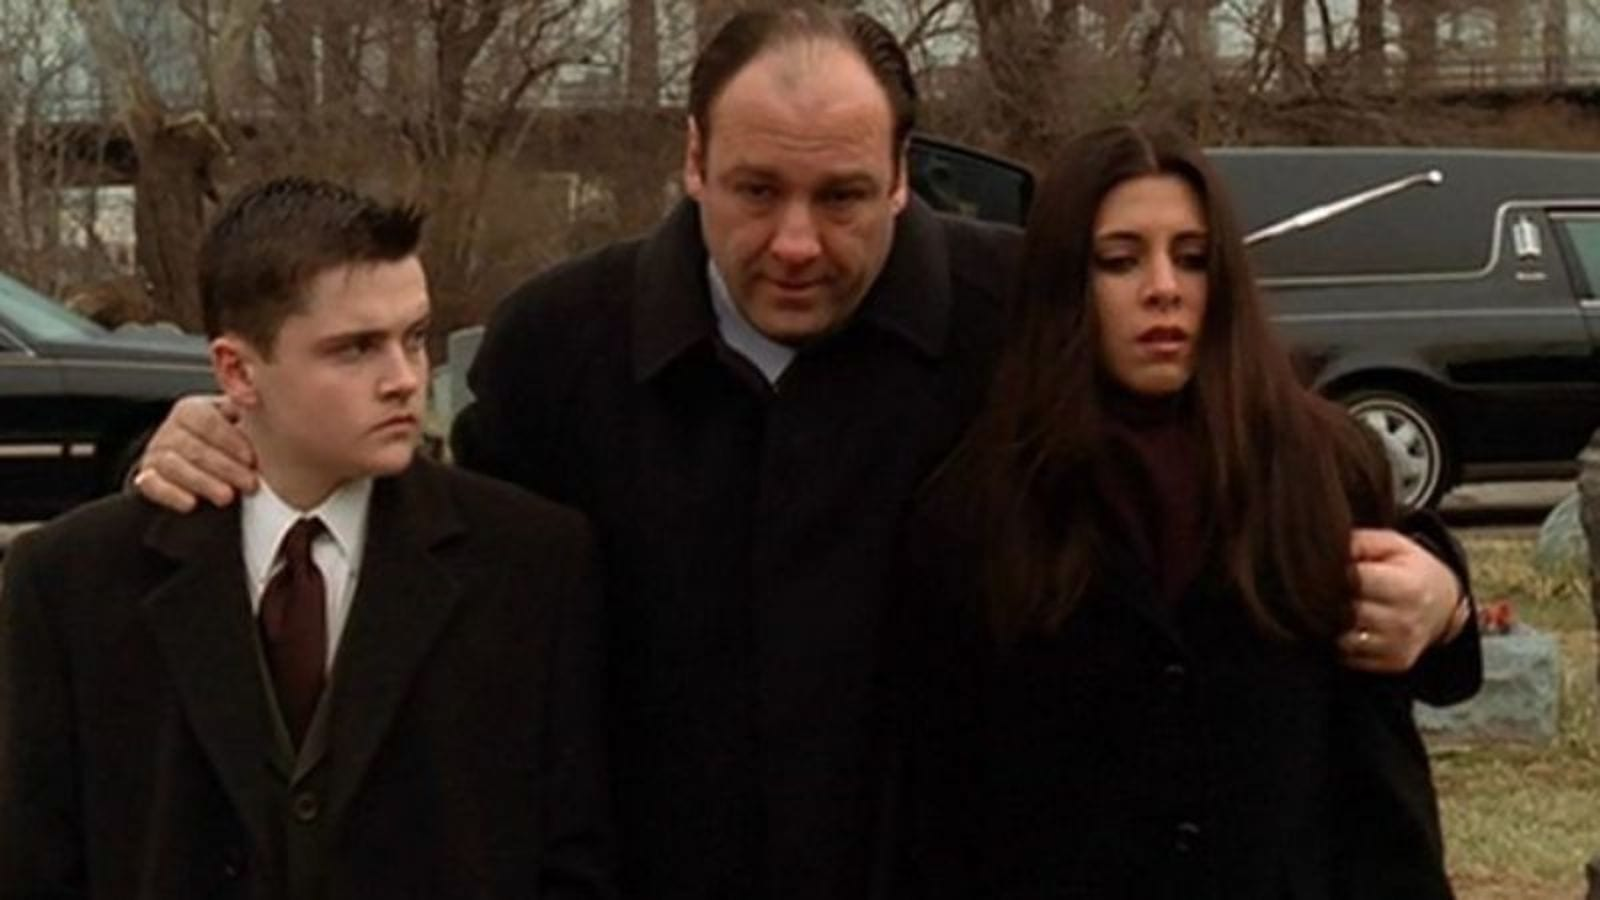 Tony escorts A.J. and Meadow to a funeral